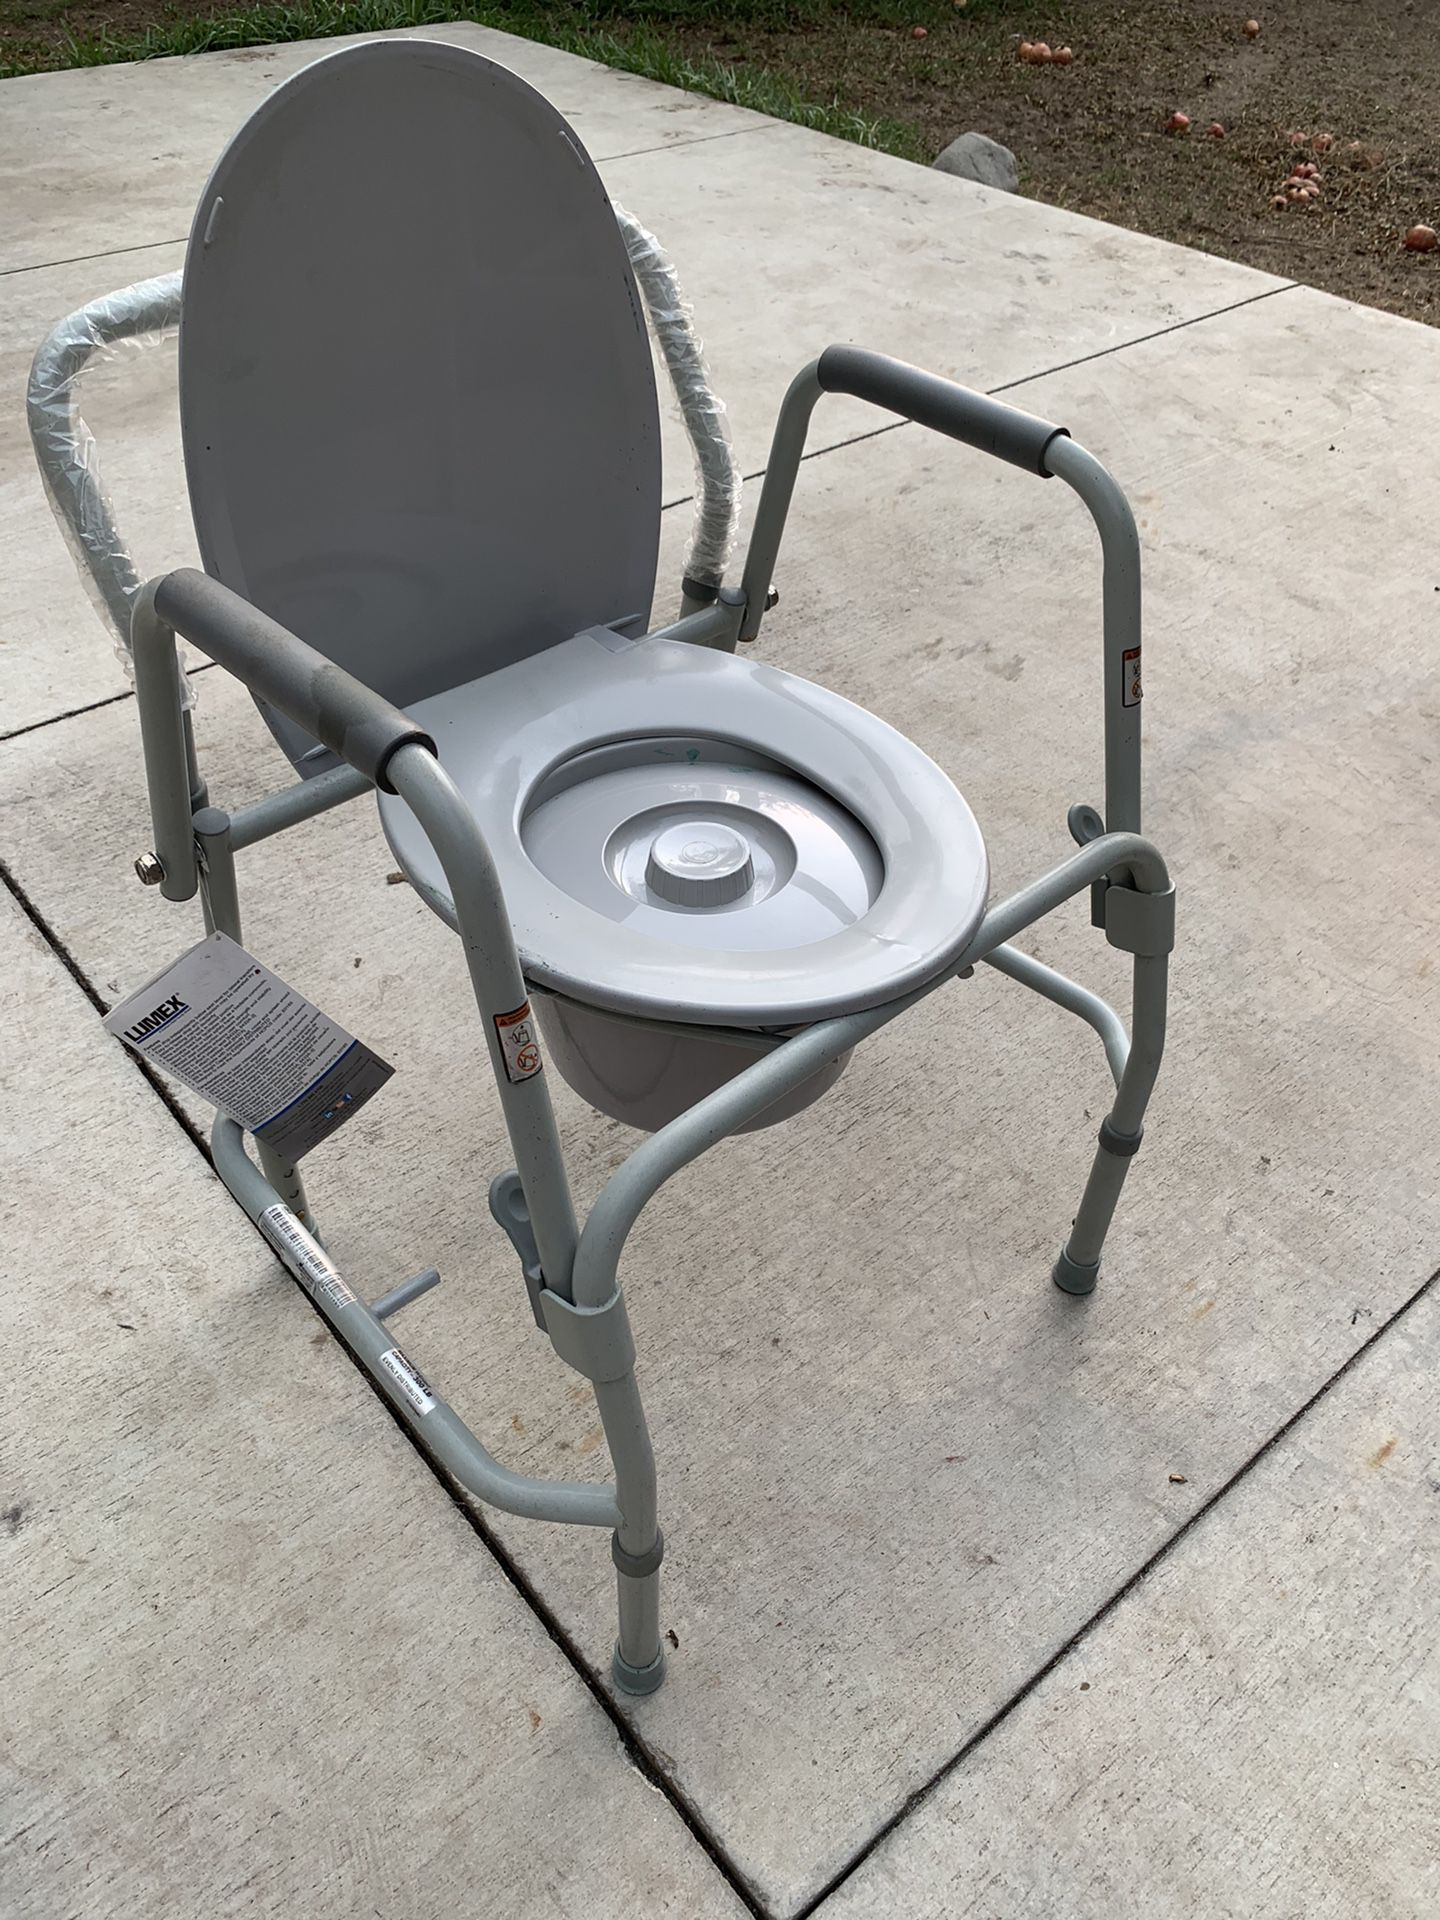 Bed side toilet seat for handicap or disabled person